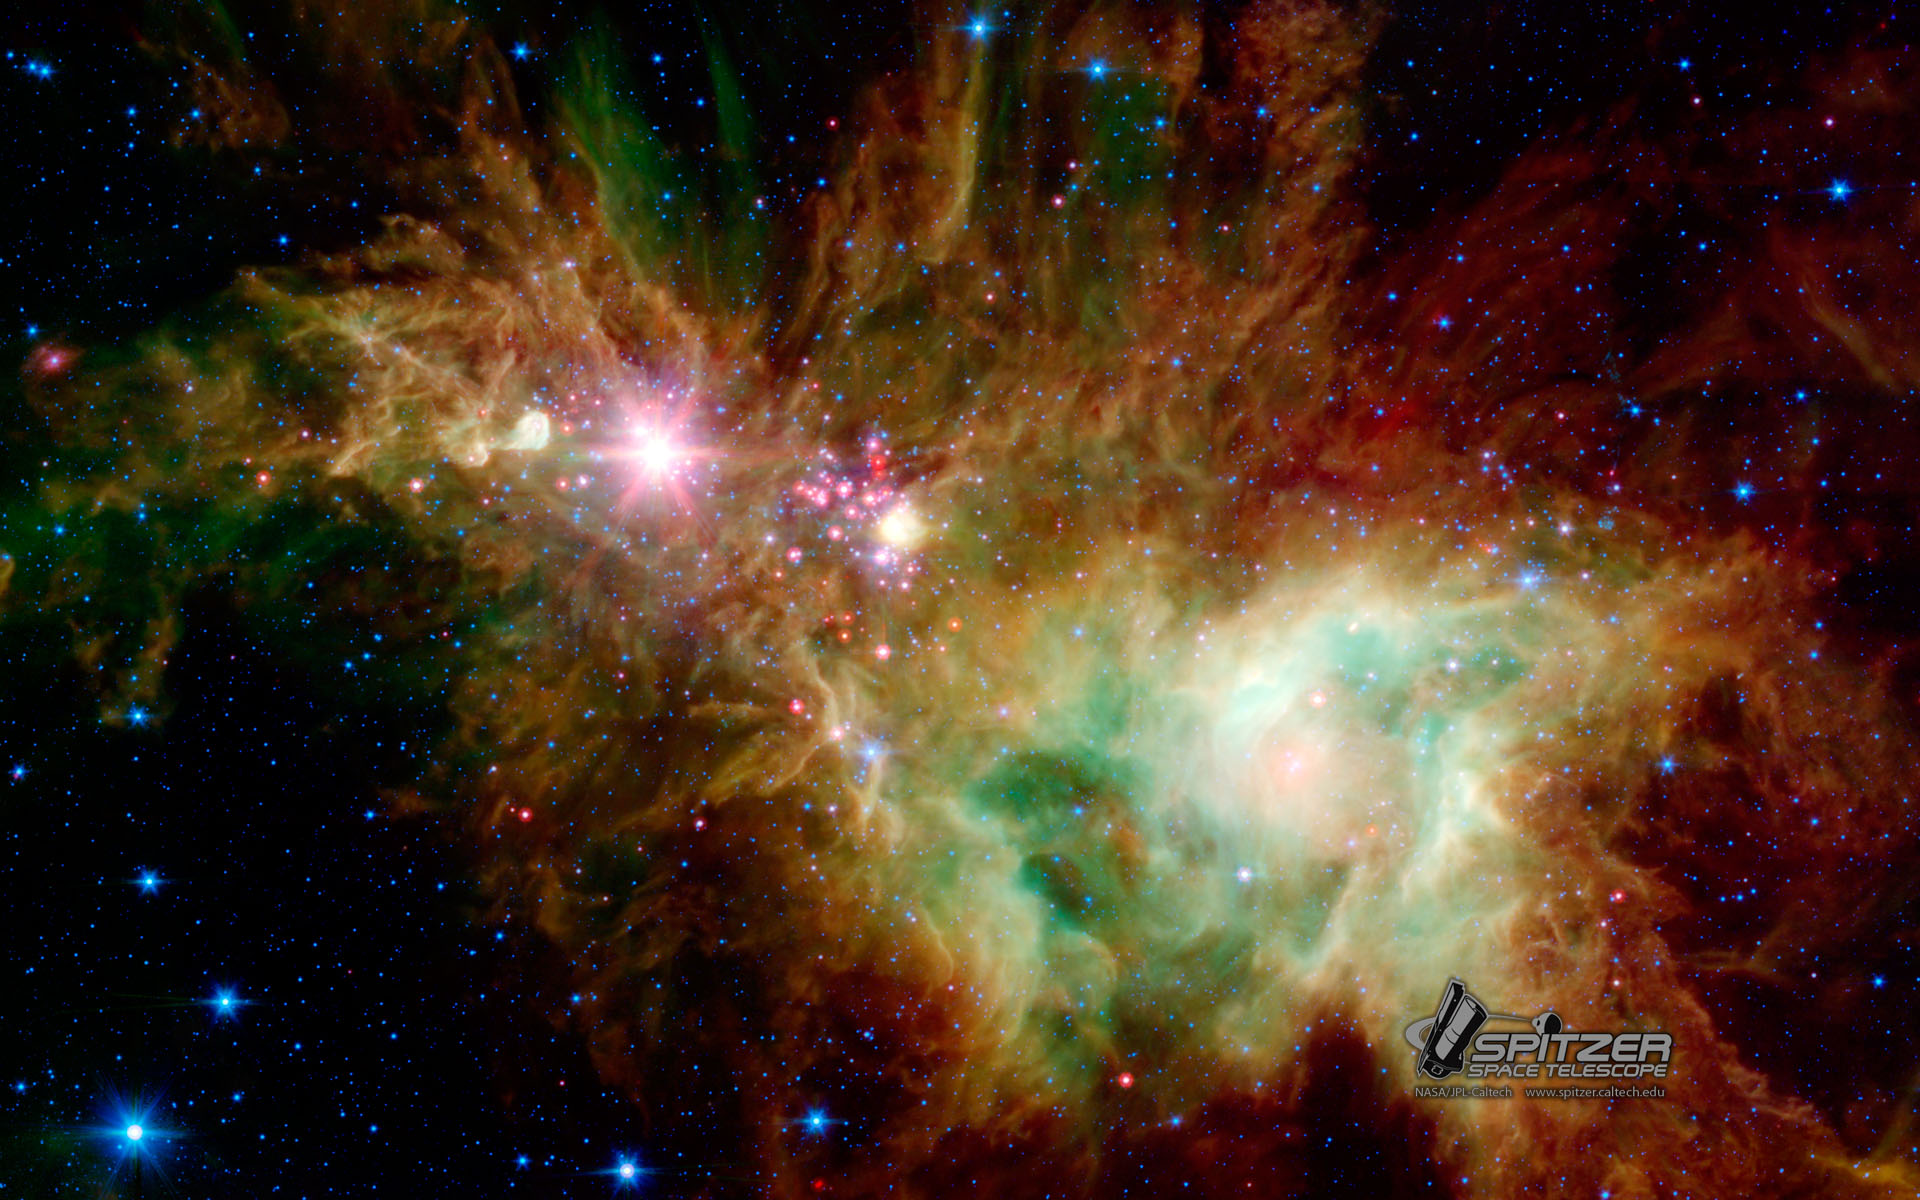 Wallpapers nasa spitzer space telescope - Spitzer space telescope wallpaper ...